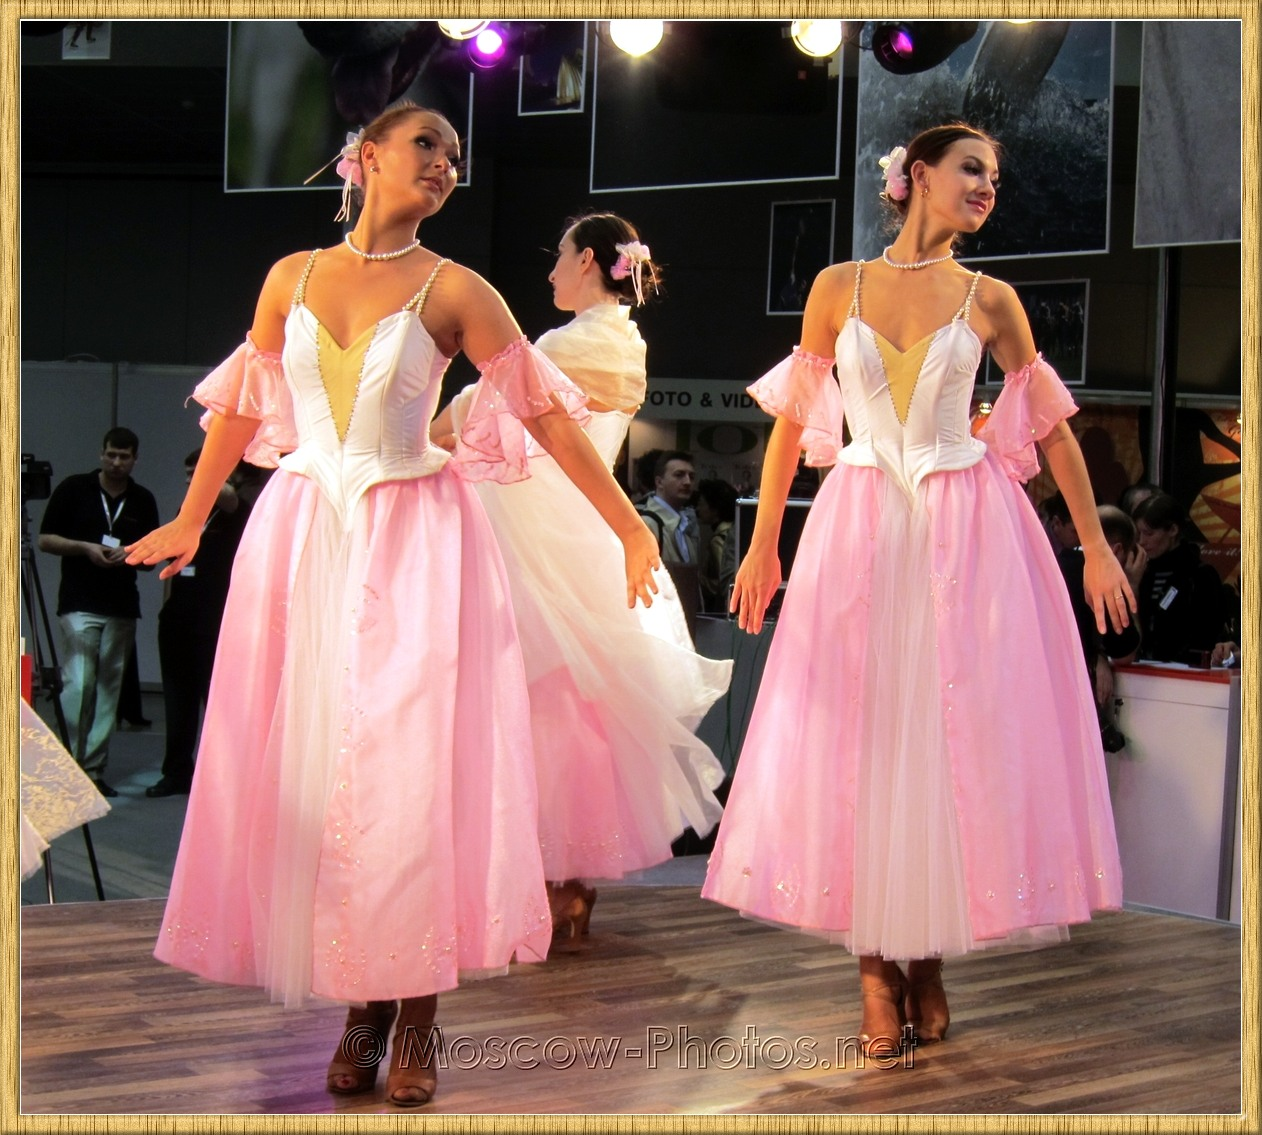 Dancing girls in pink dresses at Photoforum - 2010